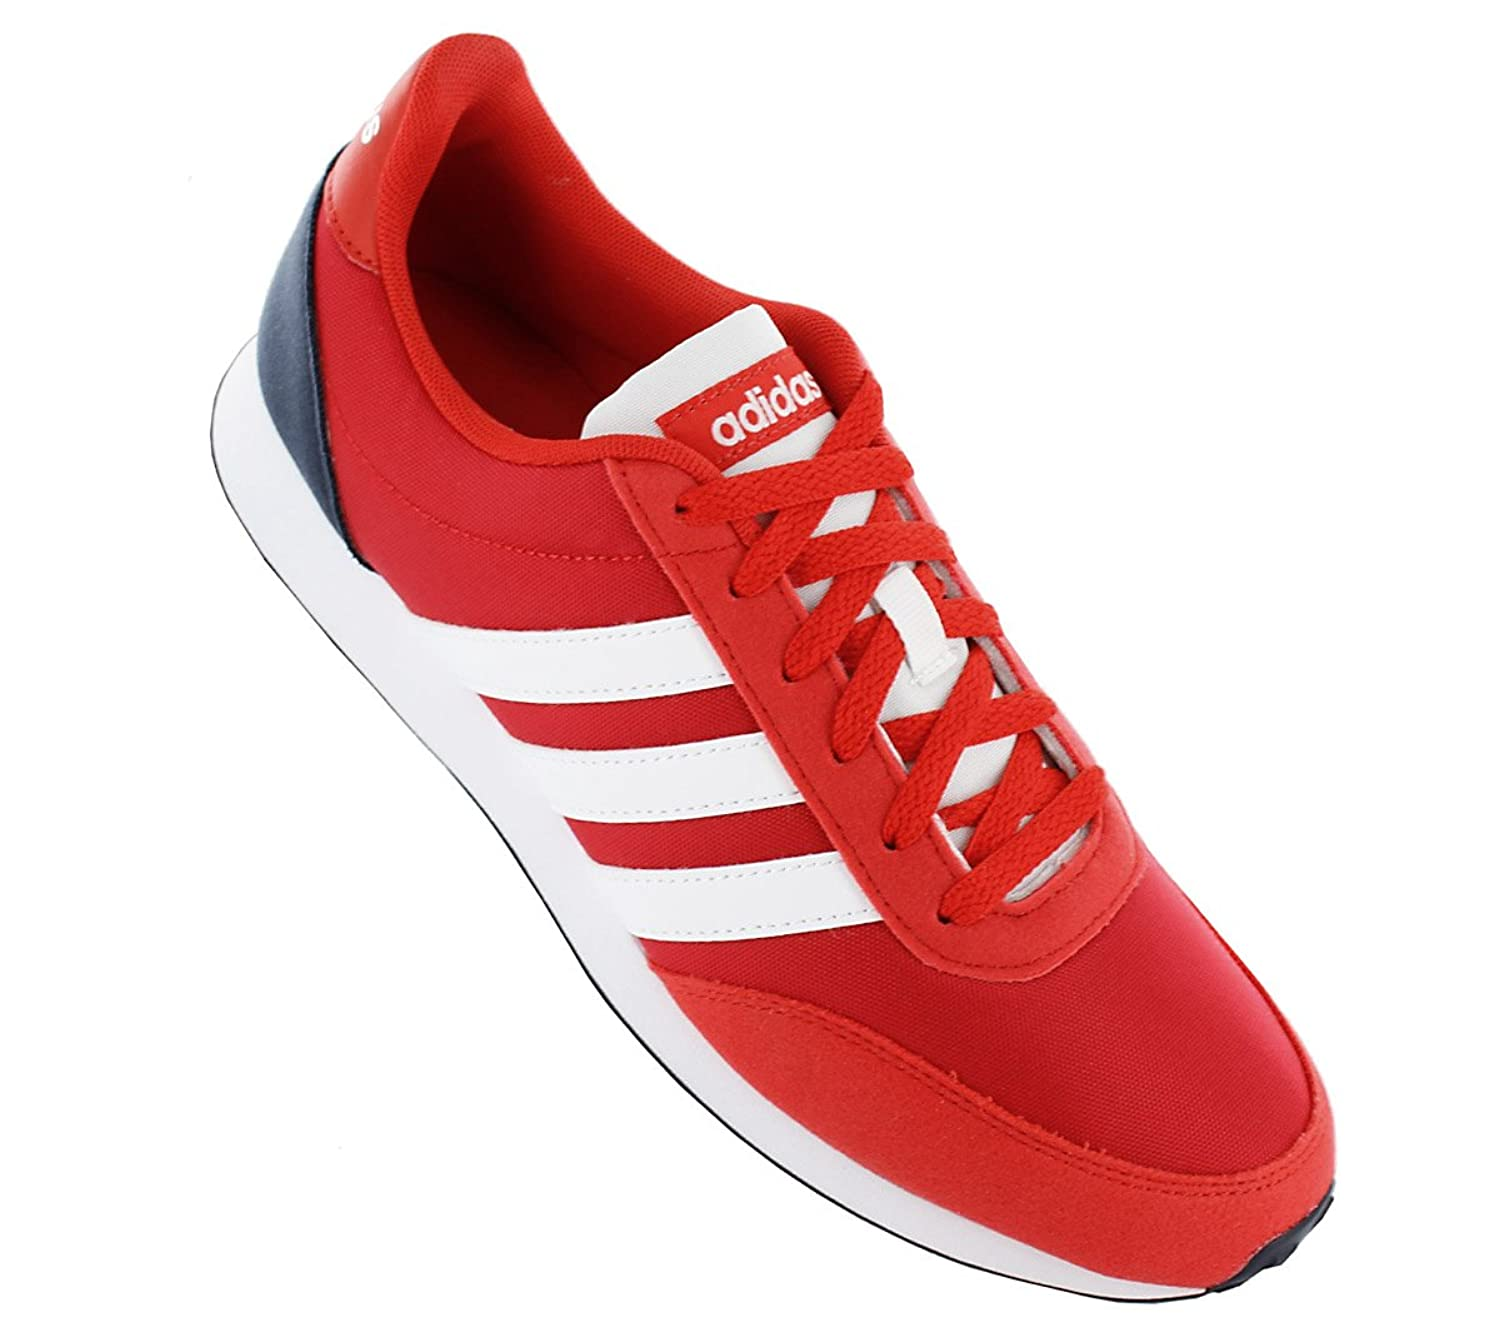 adidas V Racer 20 - DB0430 - Couleur: Rouge - Pointure: 46.6